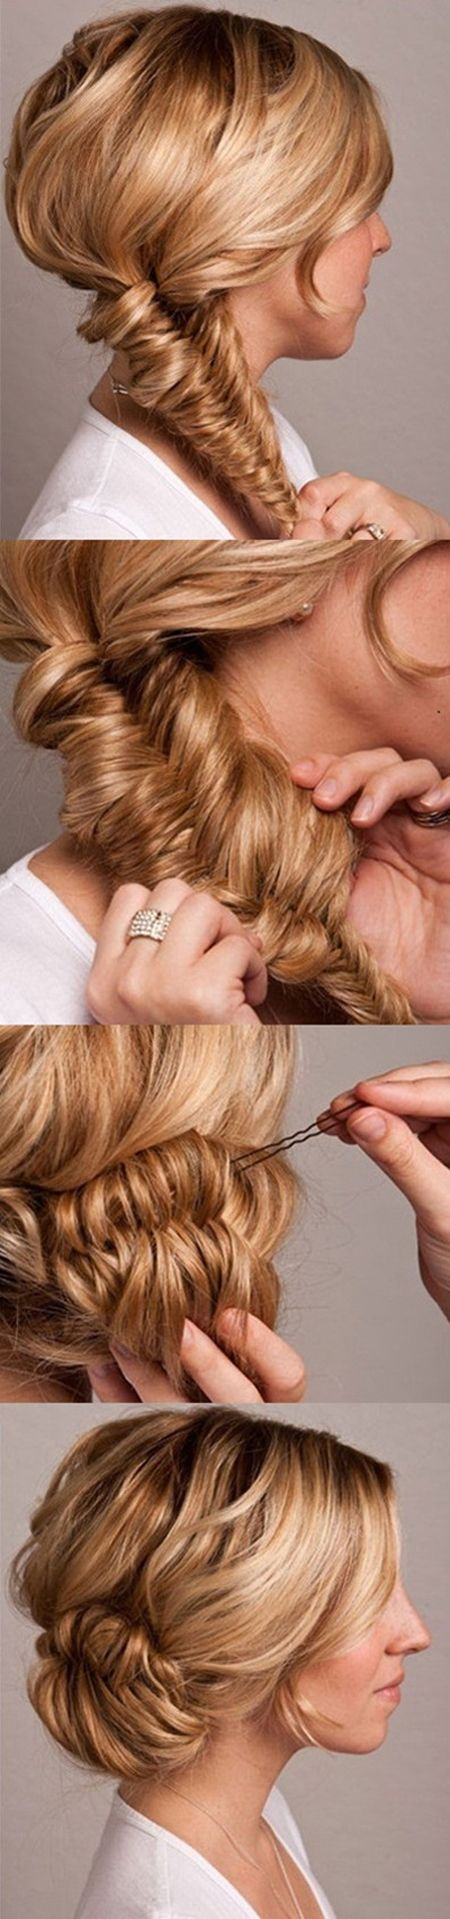 #Fishtail Bun Wedding Hair Tutorial  #Fashion #New #Nice #WinterClothes #2dayslook  www.2dayslook.com